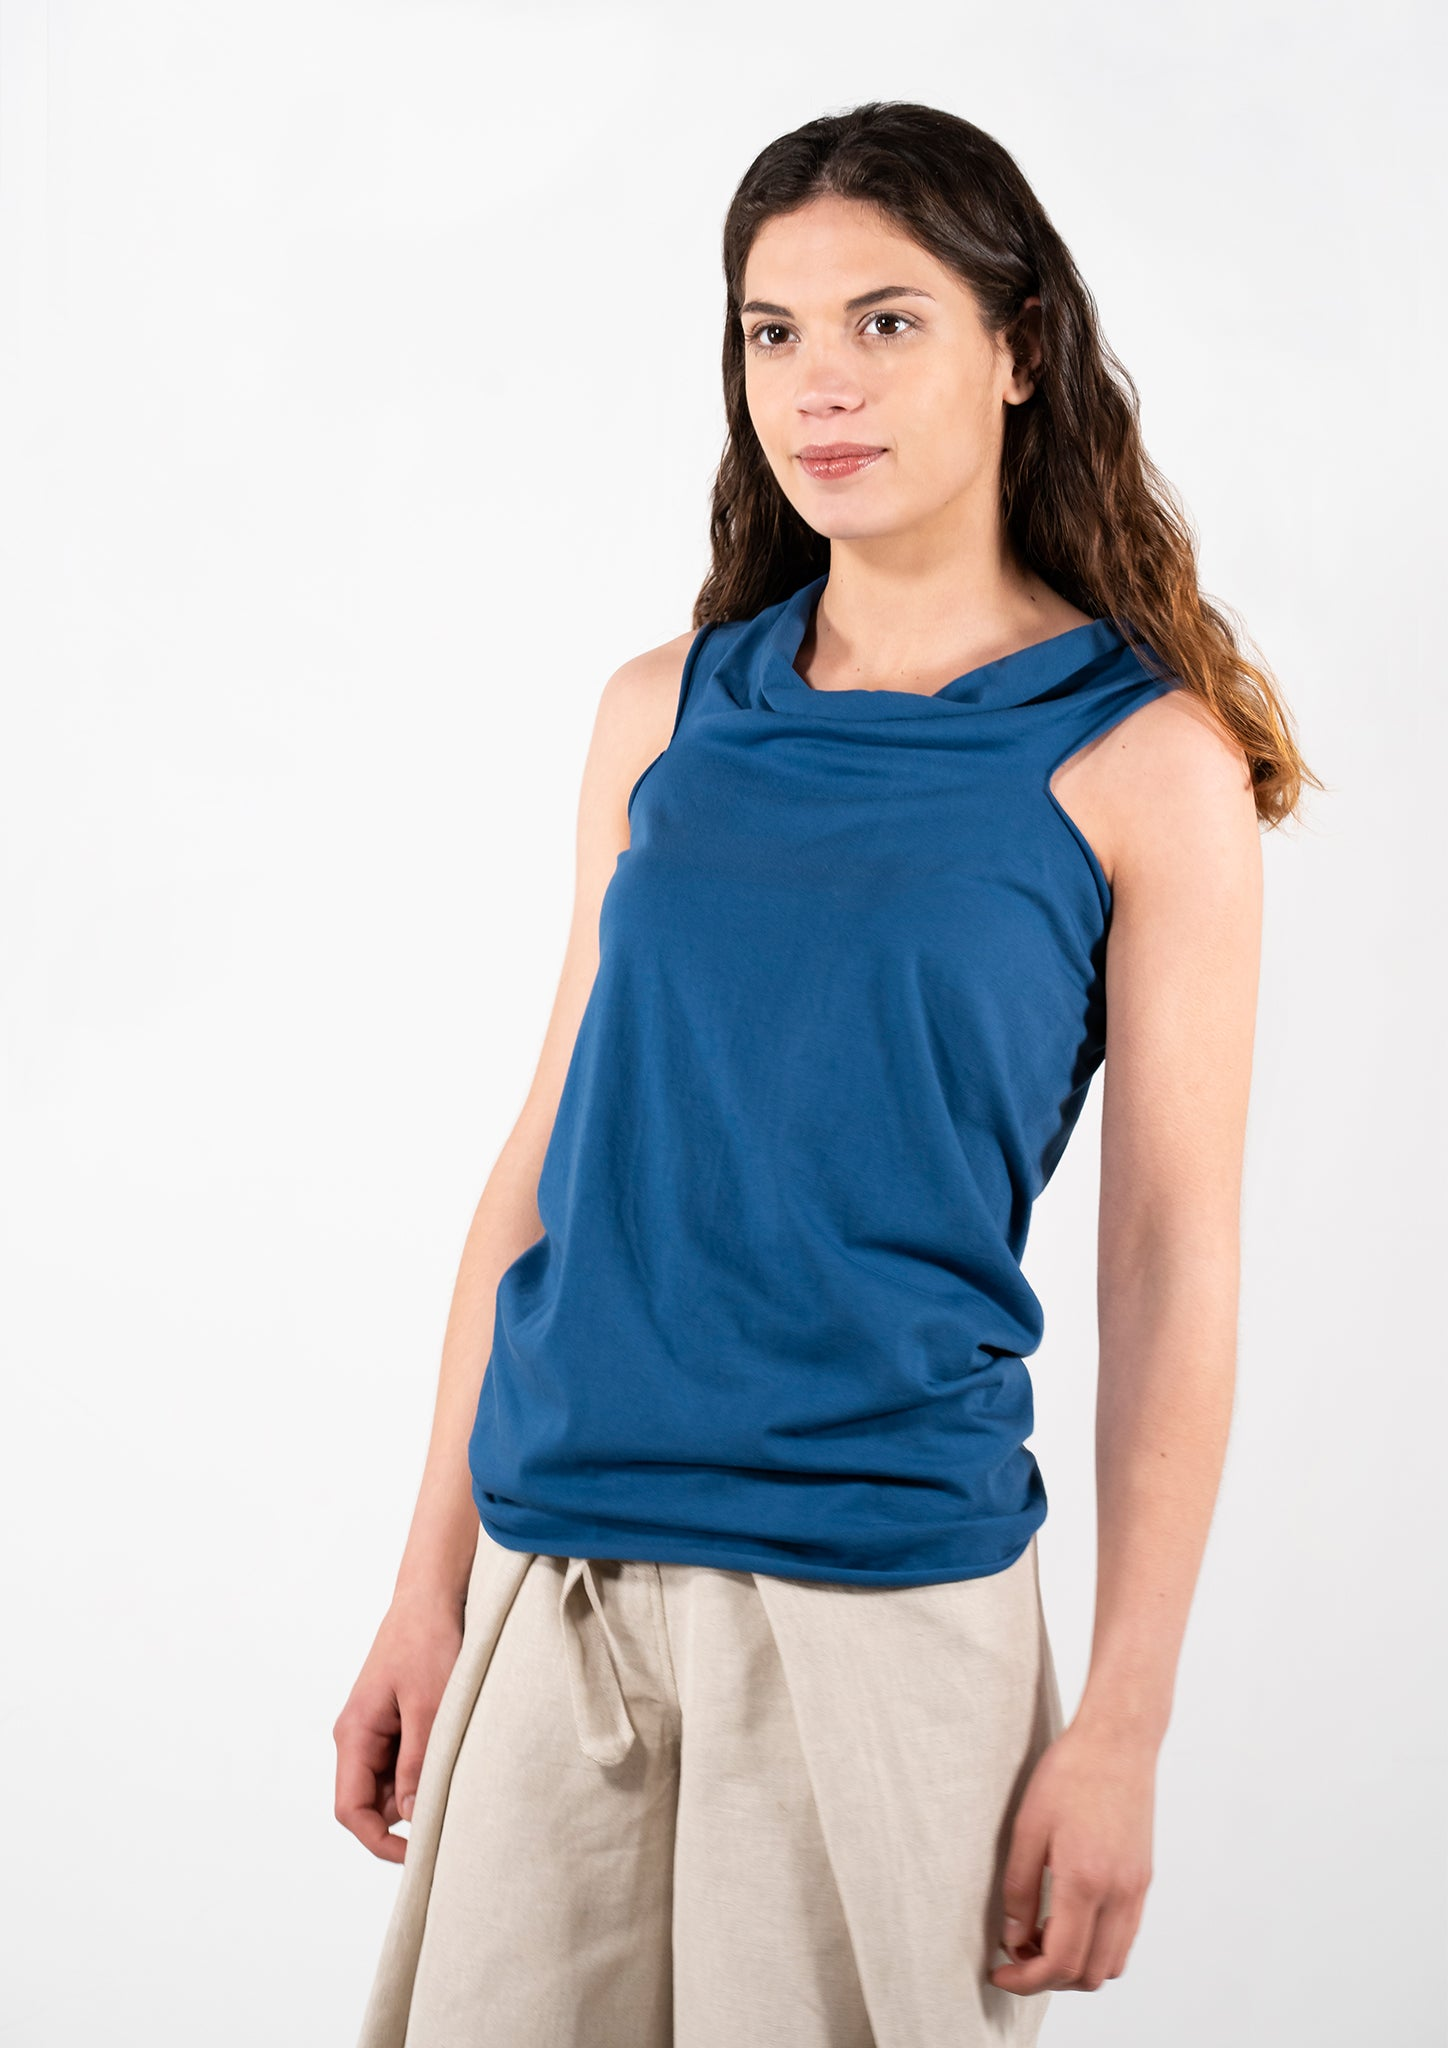 Elementum multifunctional blue top.